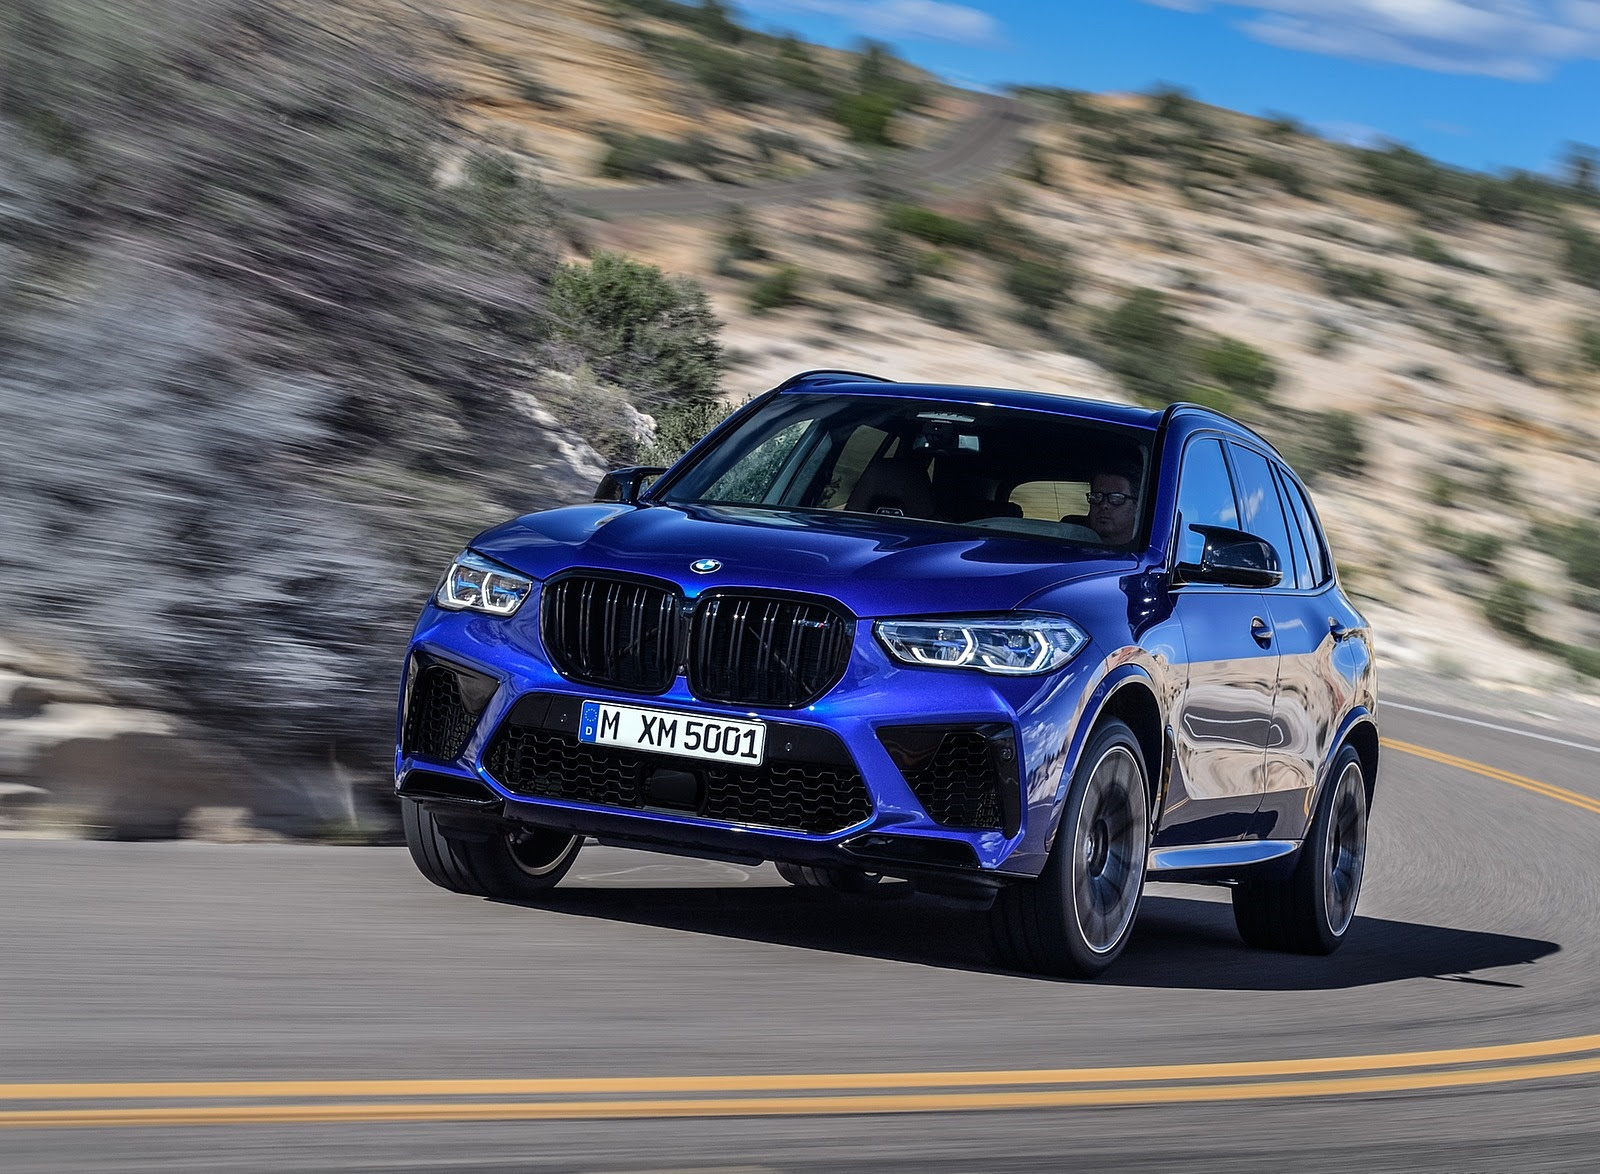 2020 Bmw X5 M Competition Wallpapers 78 Hd Images Newcarcars